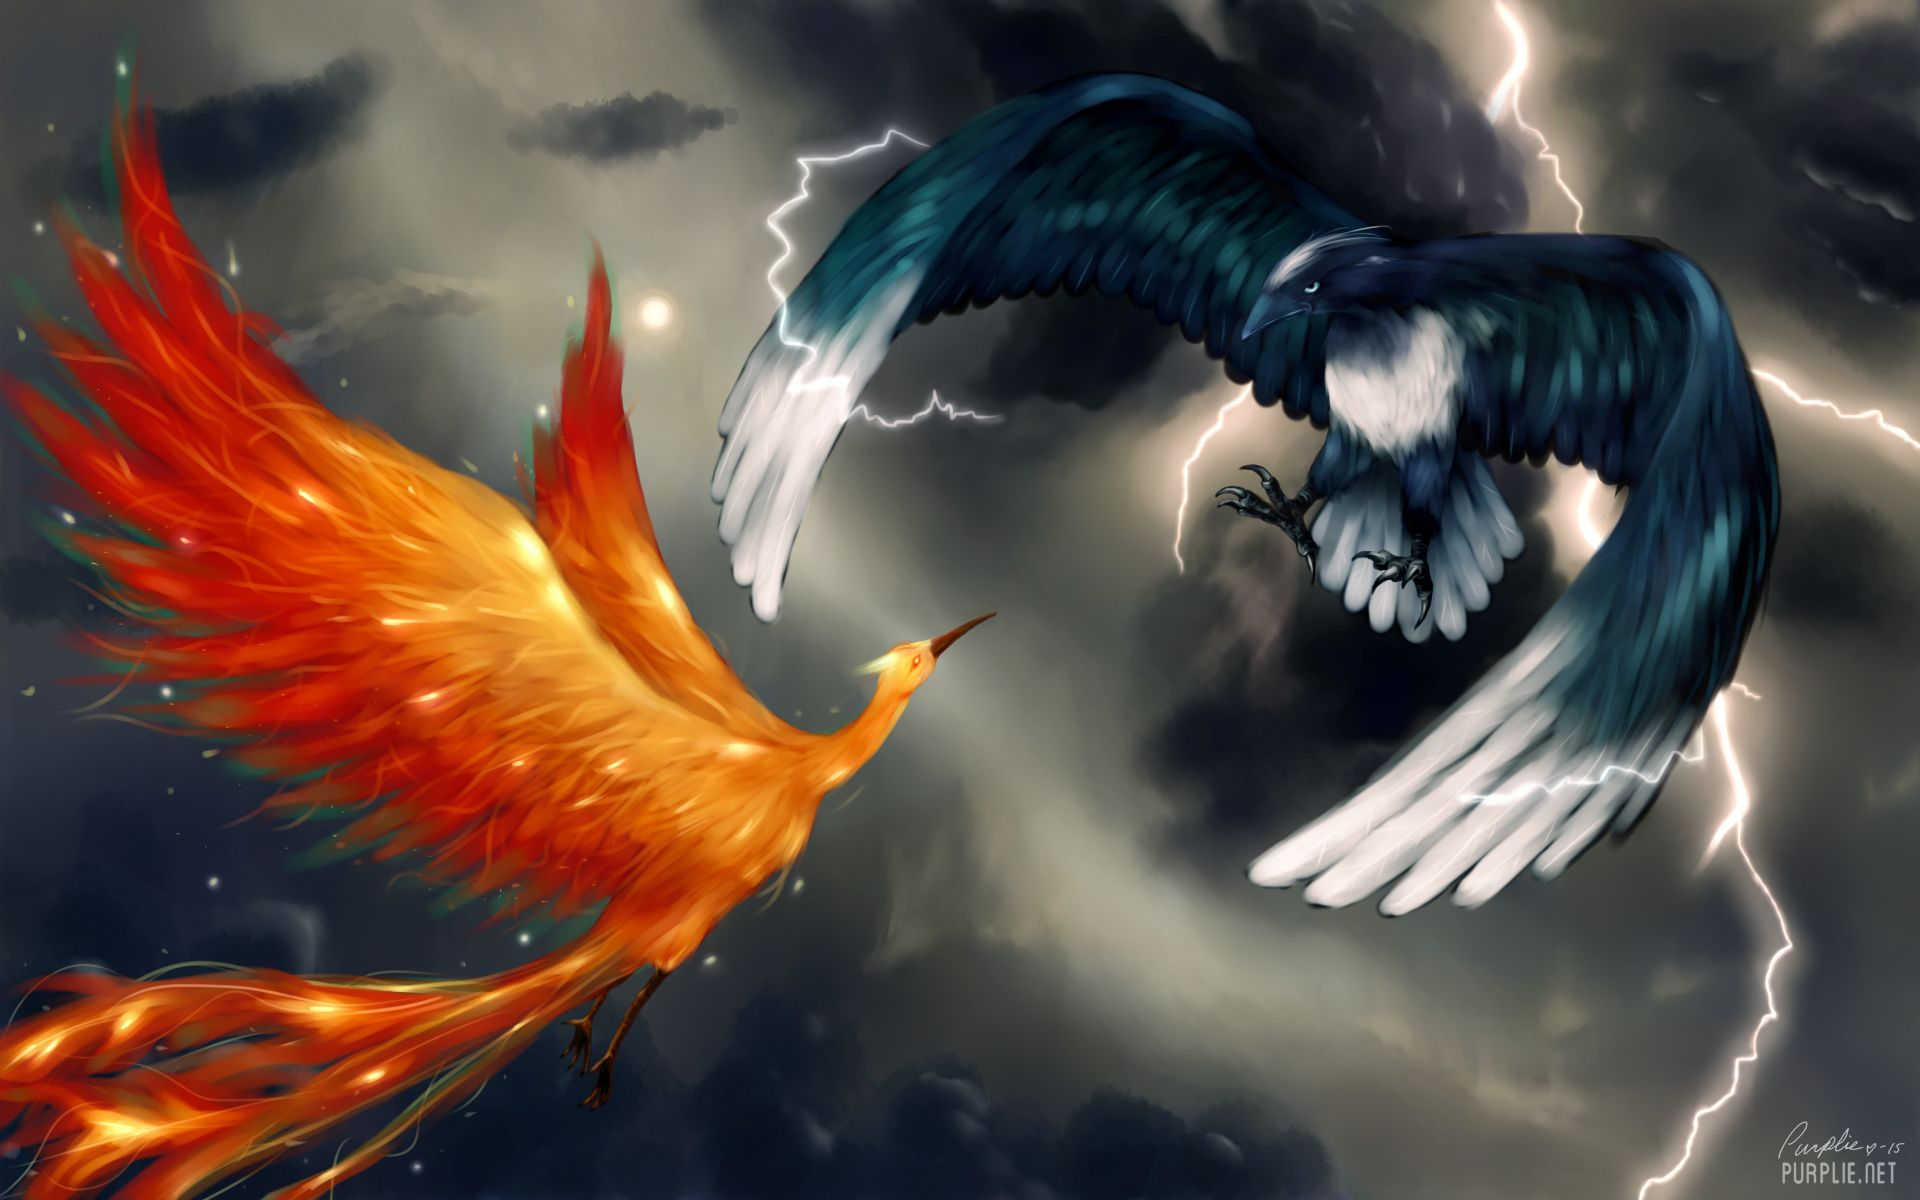 Tempest and Fireburst, Feathered Brothers 1a005ce928890c98d28c0299de0dbdd7